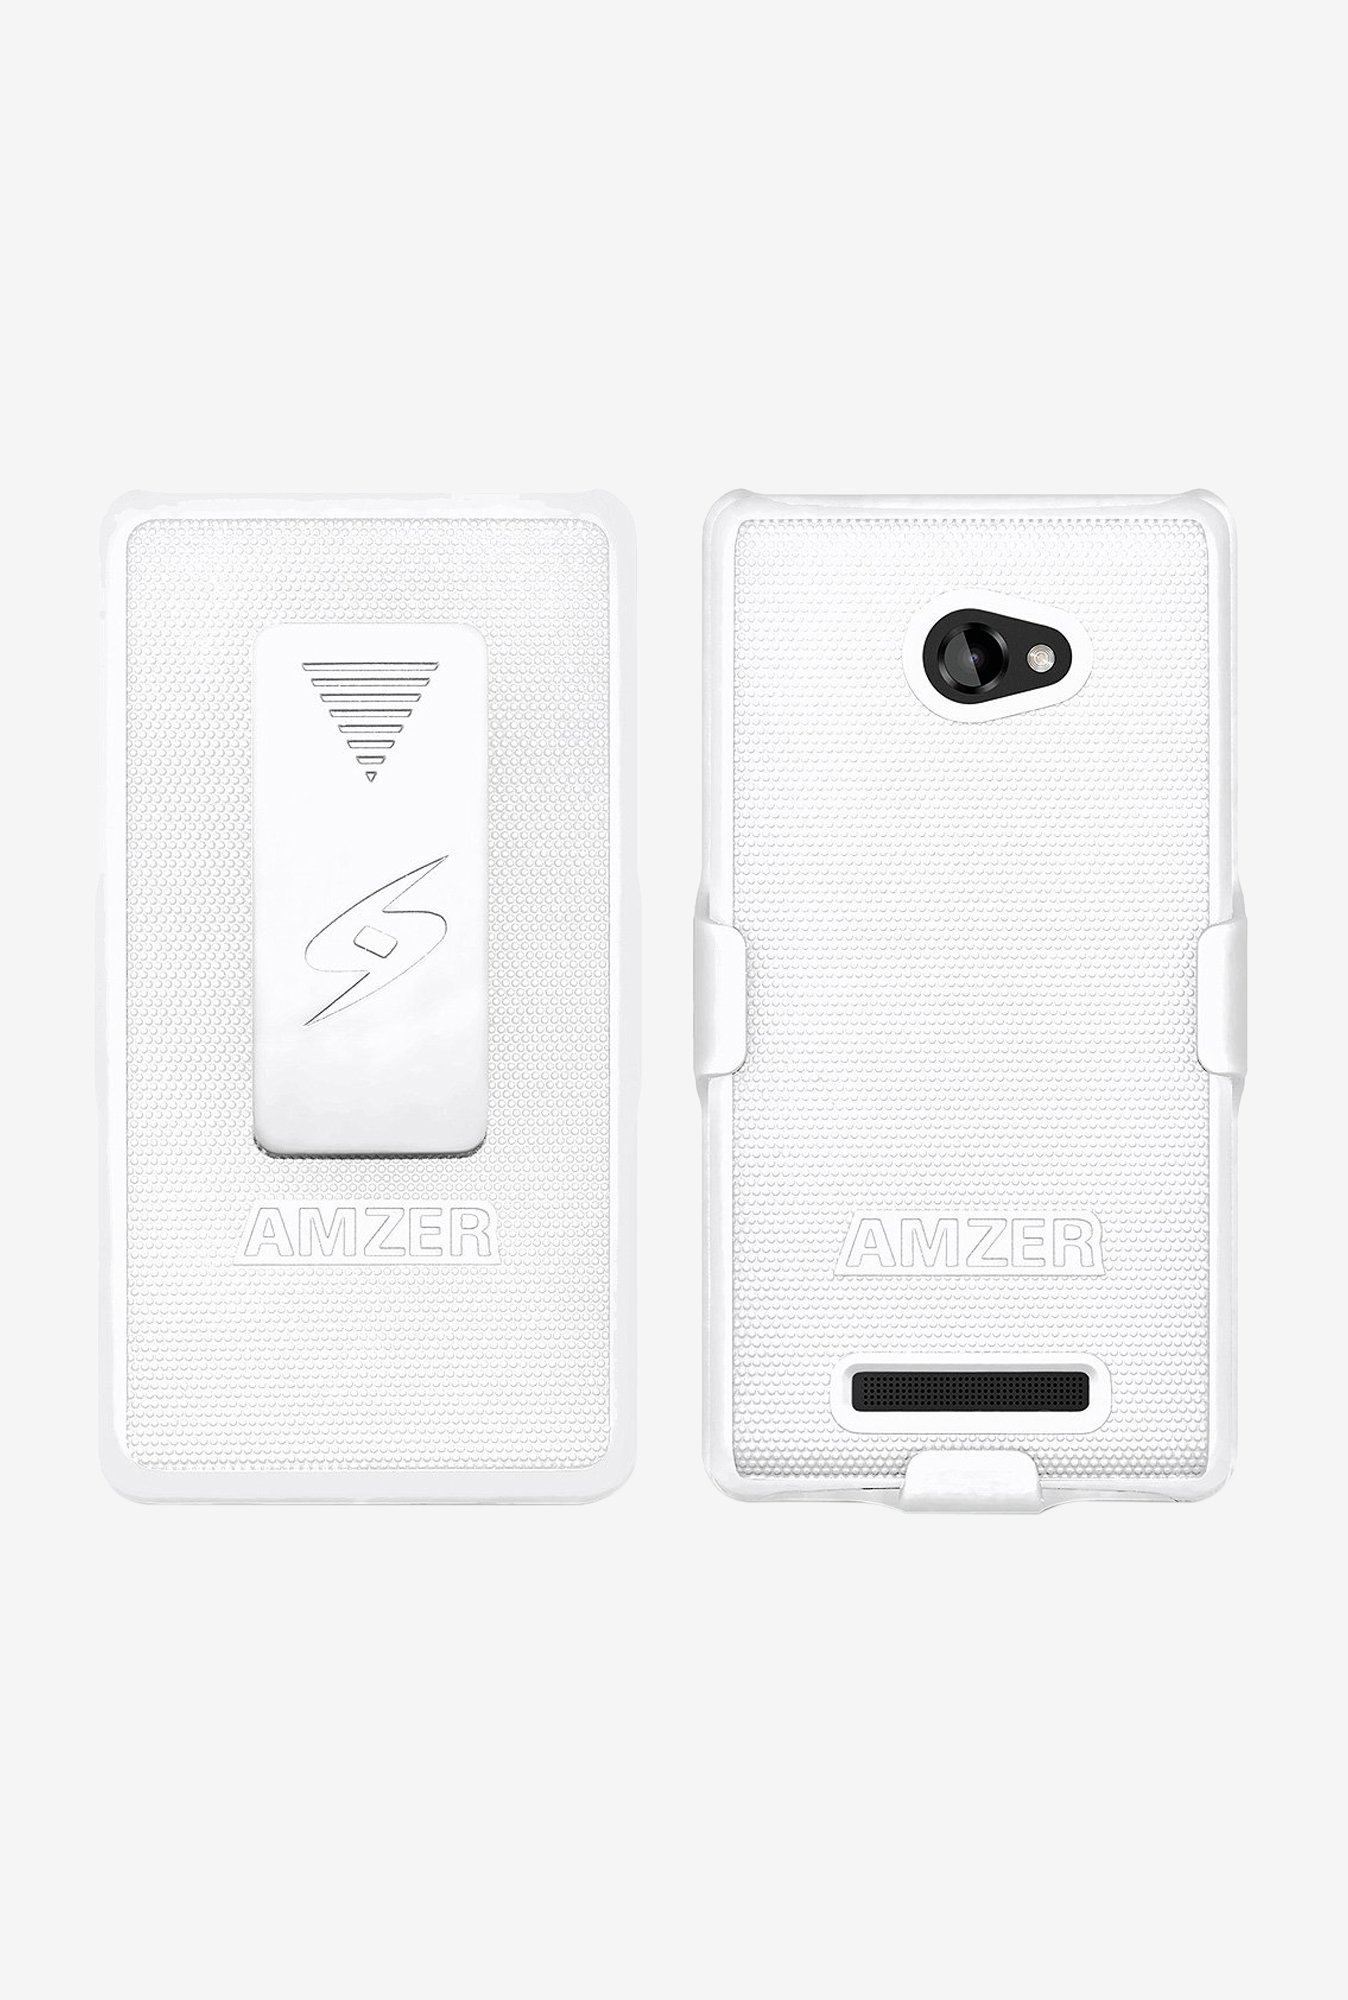 Amzer Shellster Shell Case White for HTC 8X